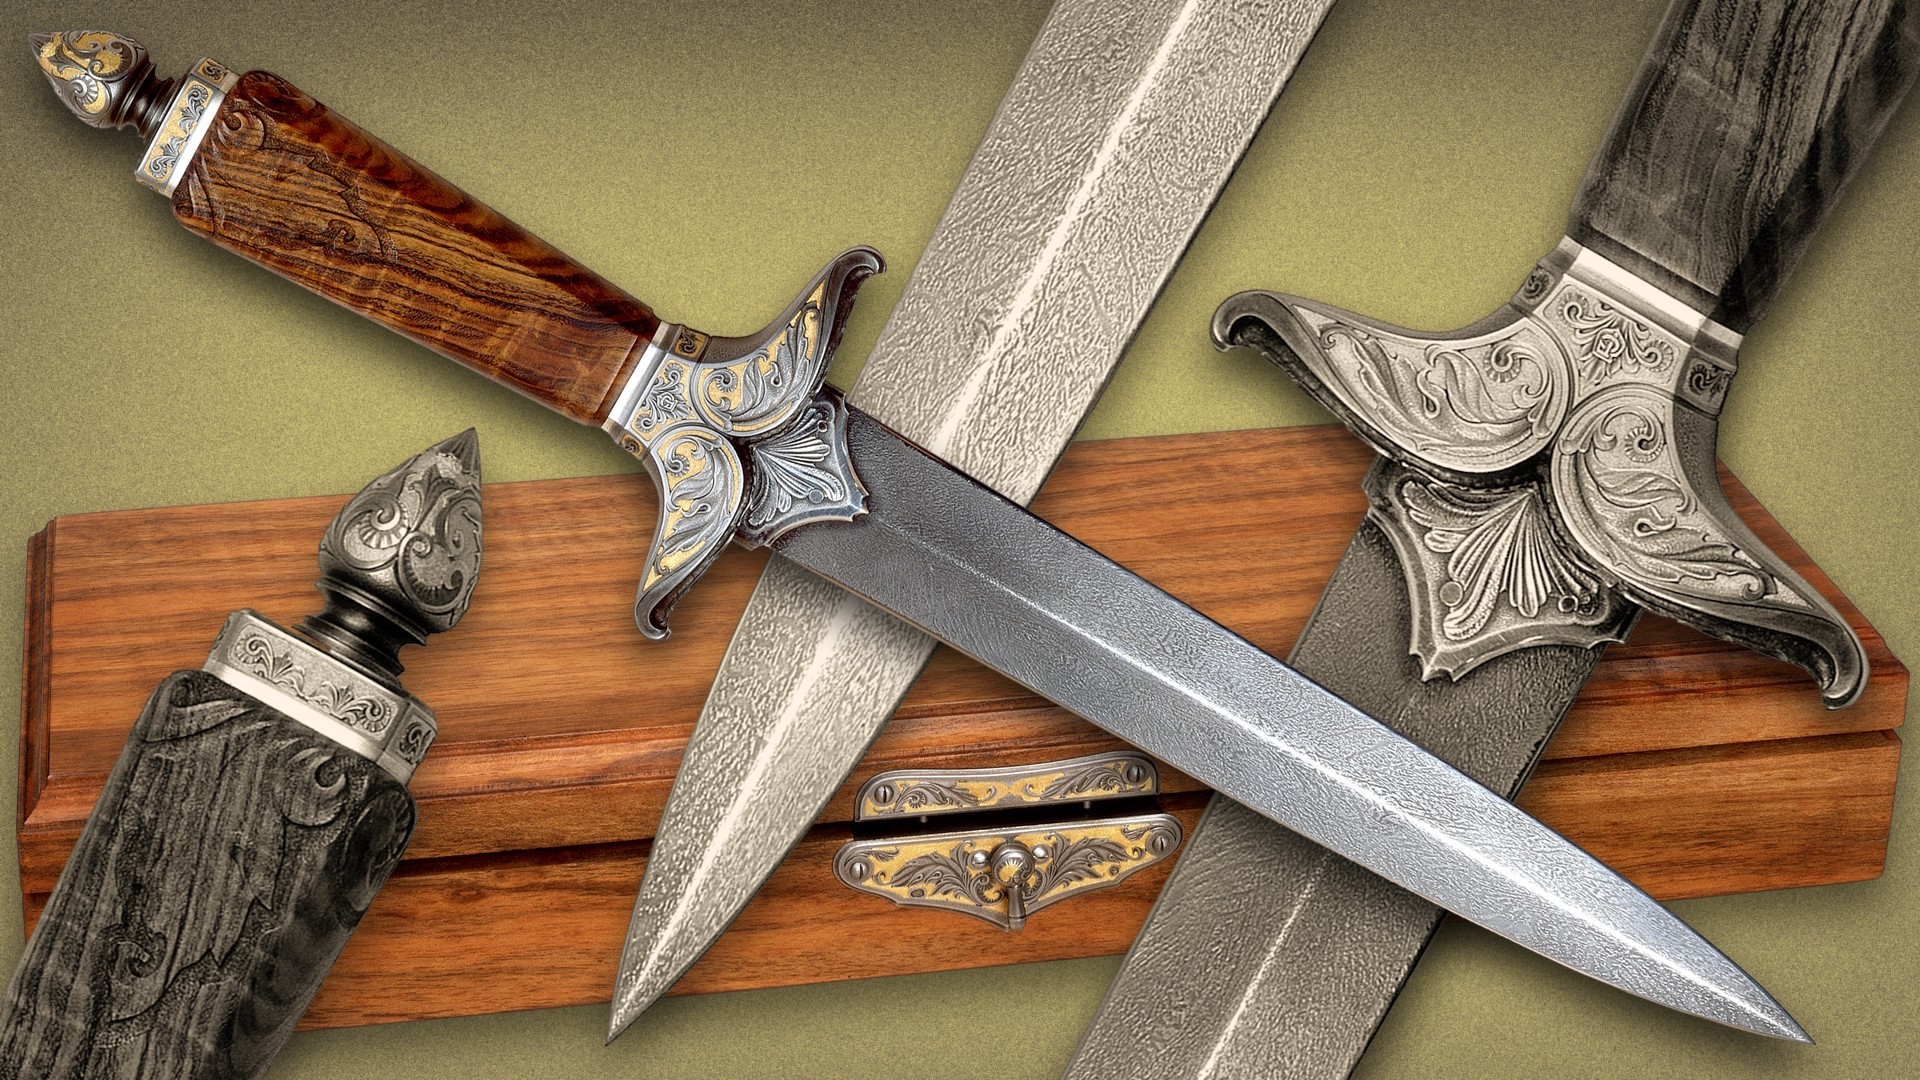 edge Steel Knives Daggers HD Wallpaper